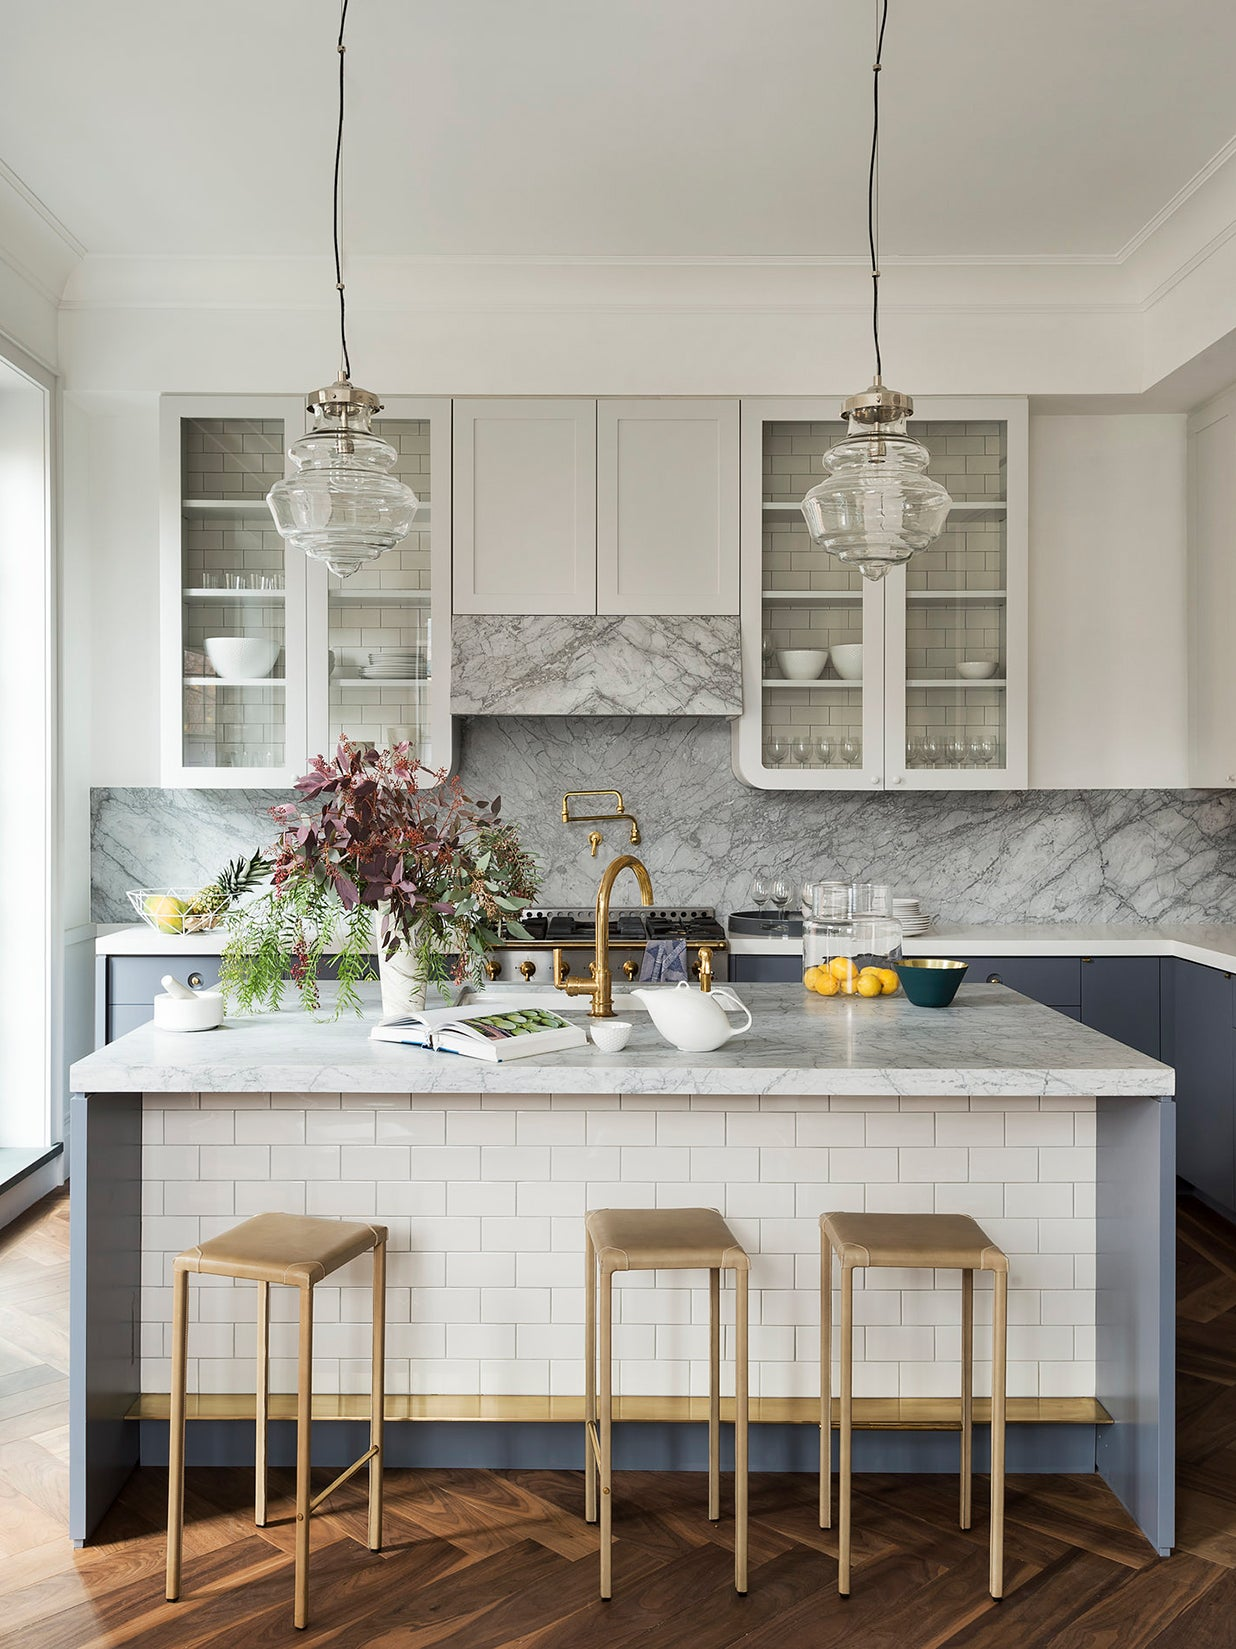 These Two-Tone Kitchen Cabinets Give You the Best of Both Worlds